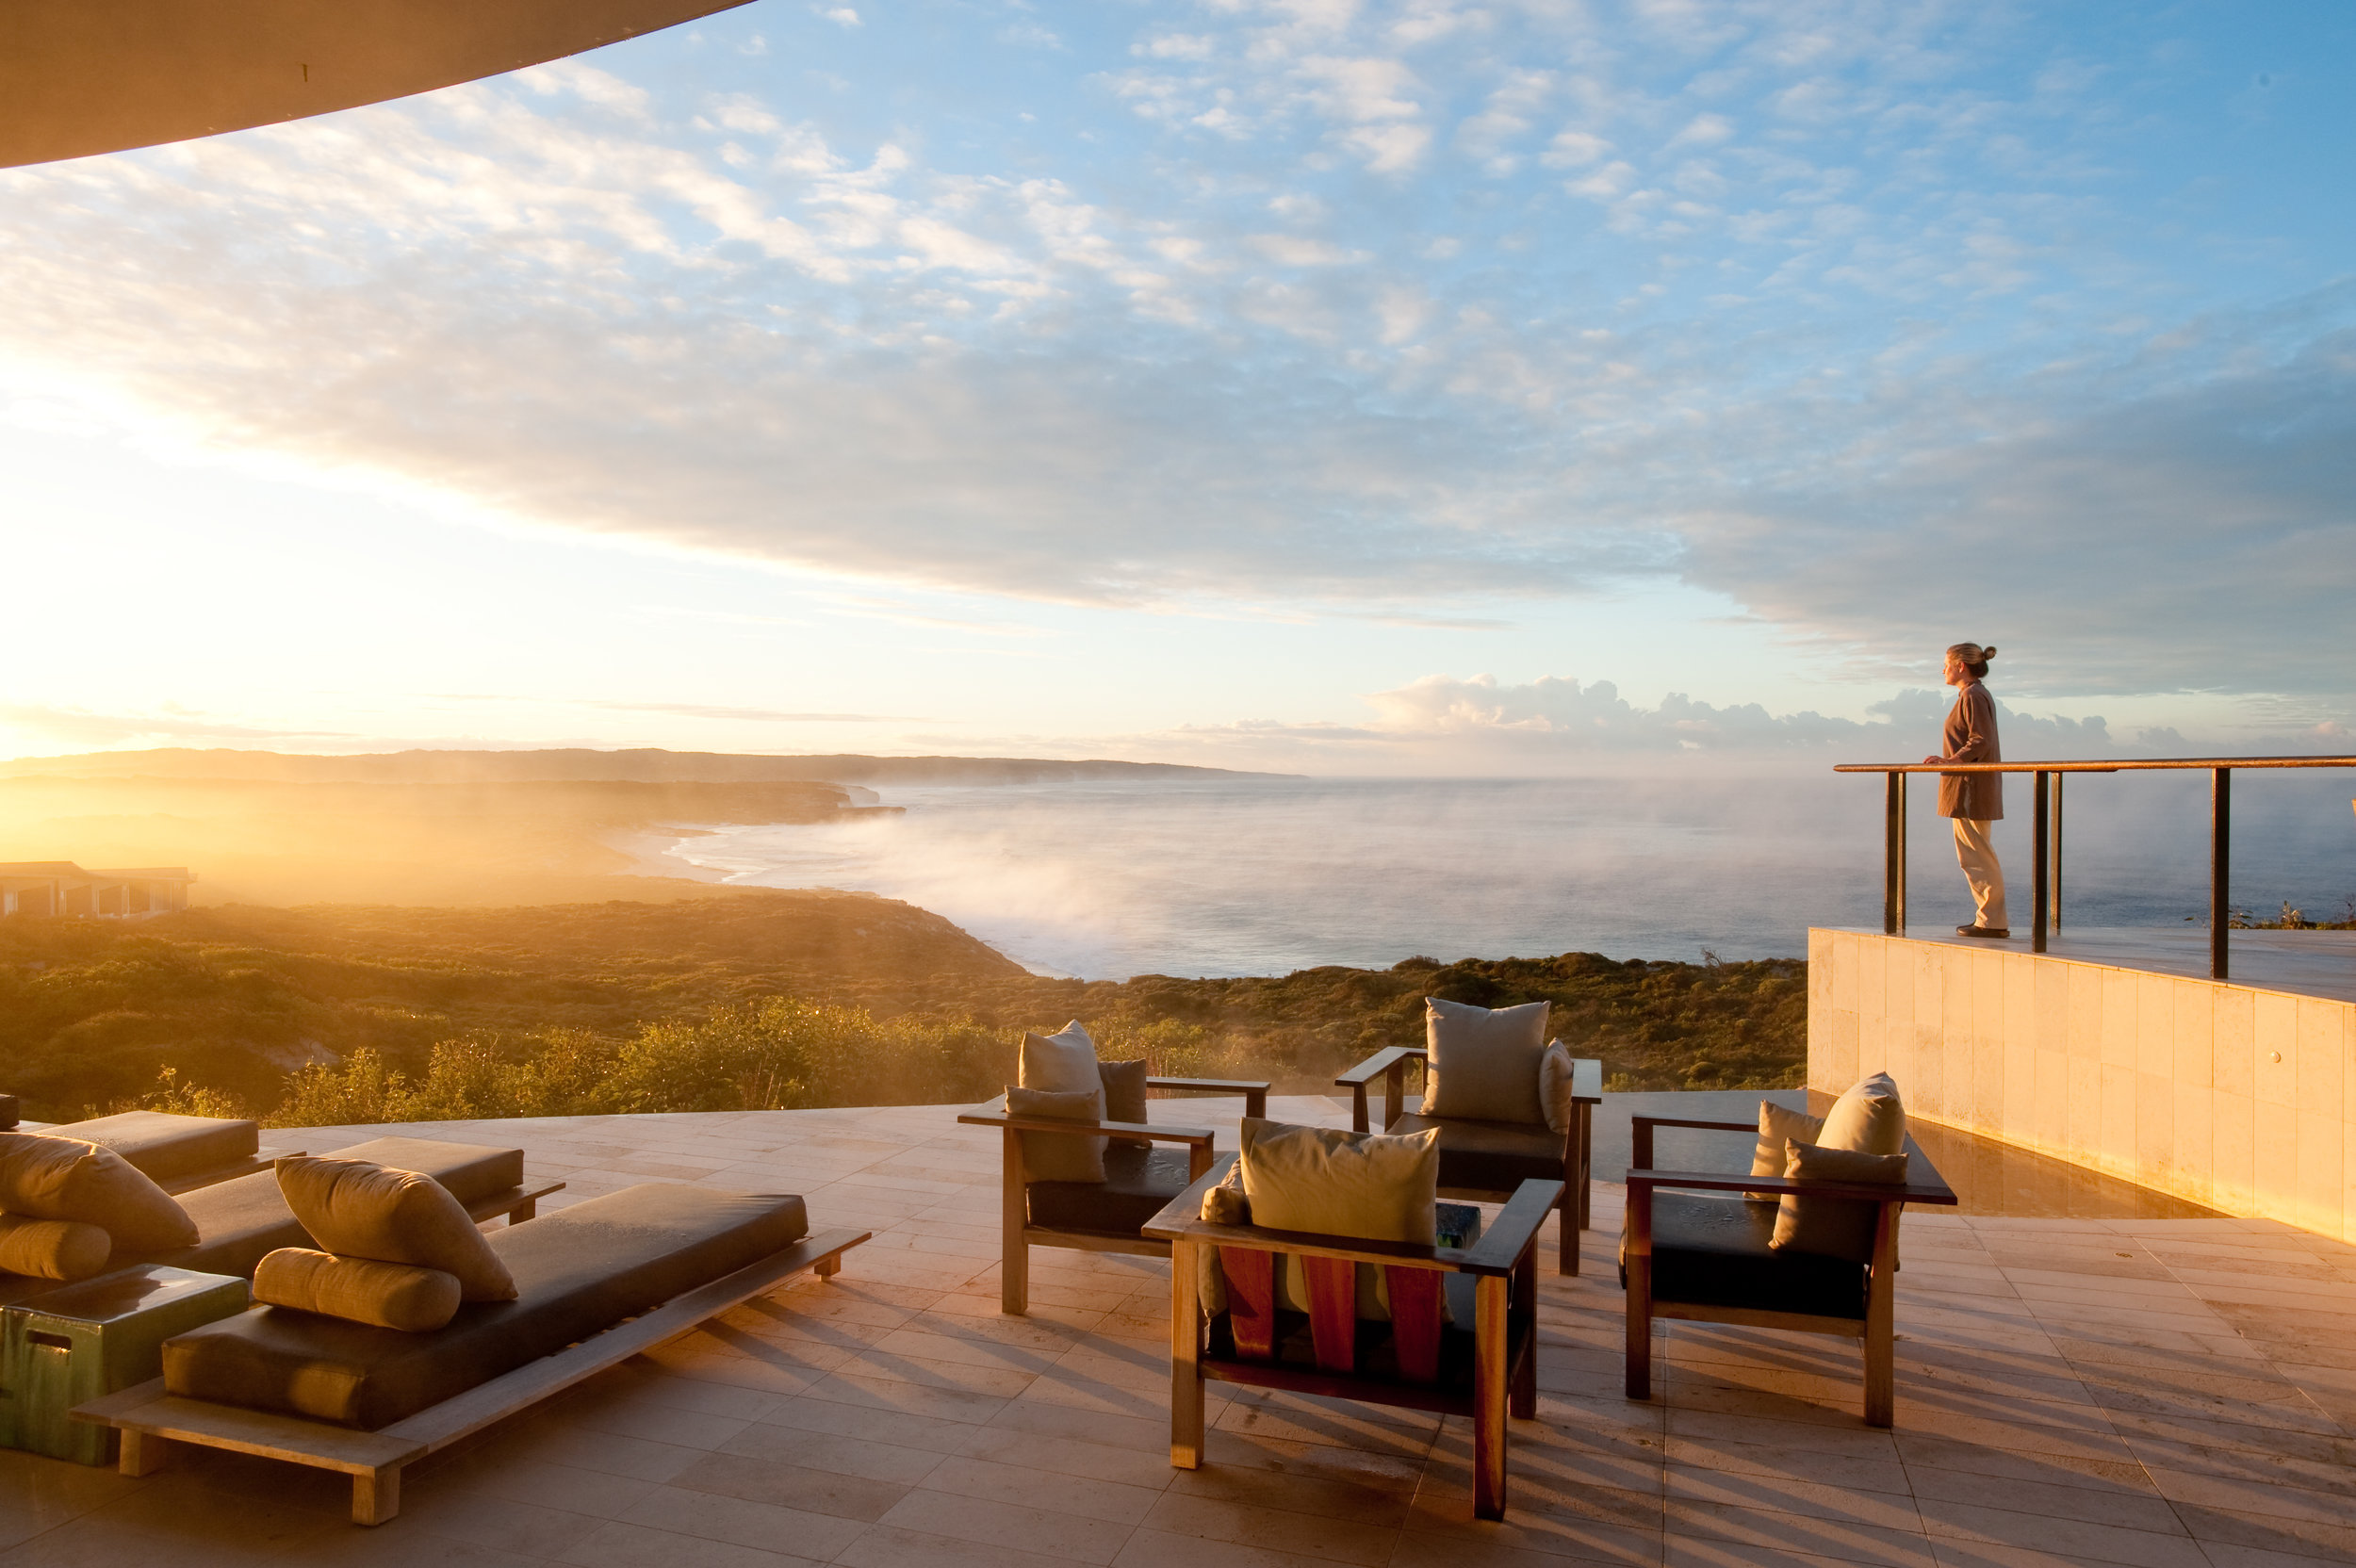 Sojourn in South Australia - Barossa Valley and Southern Ocean Lodge on Kangaroo Island, Singapore Tatler October 2016 [ Australia (Barossa Valley, Kangaroo Island)]